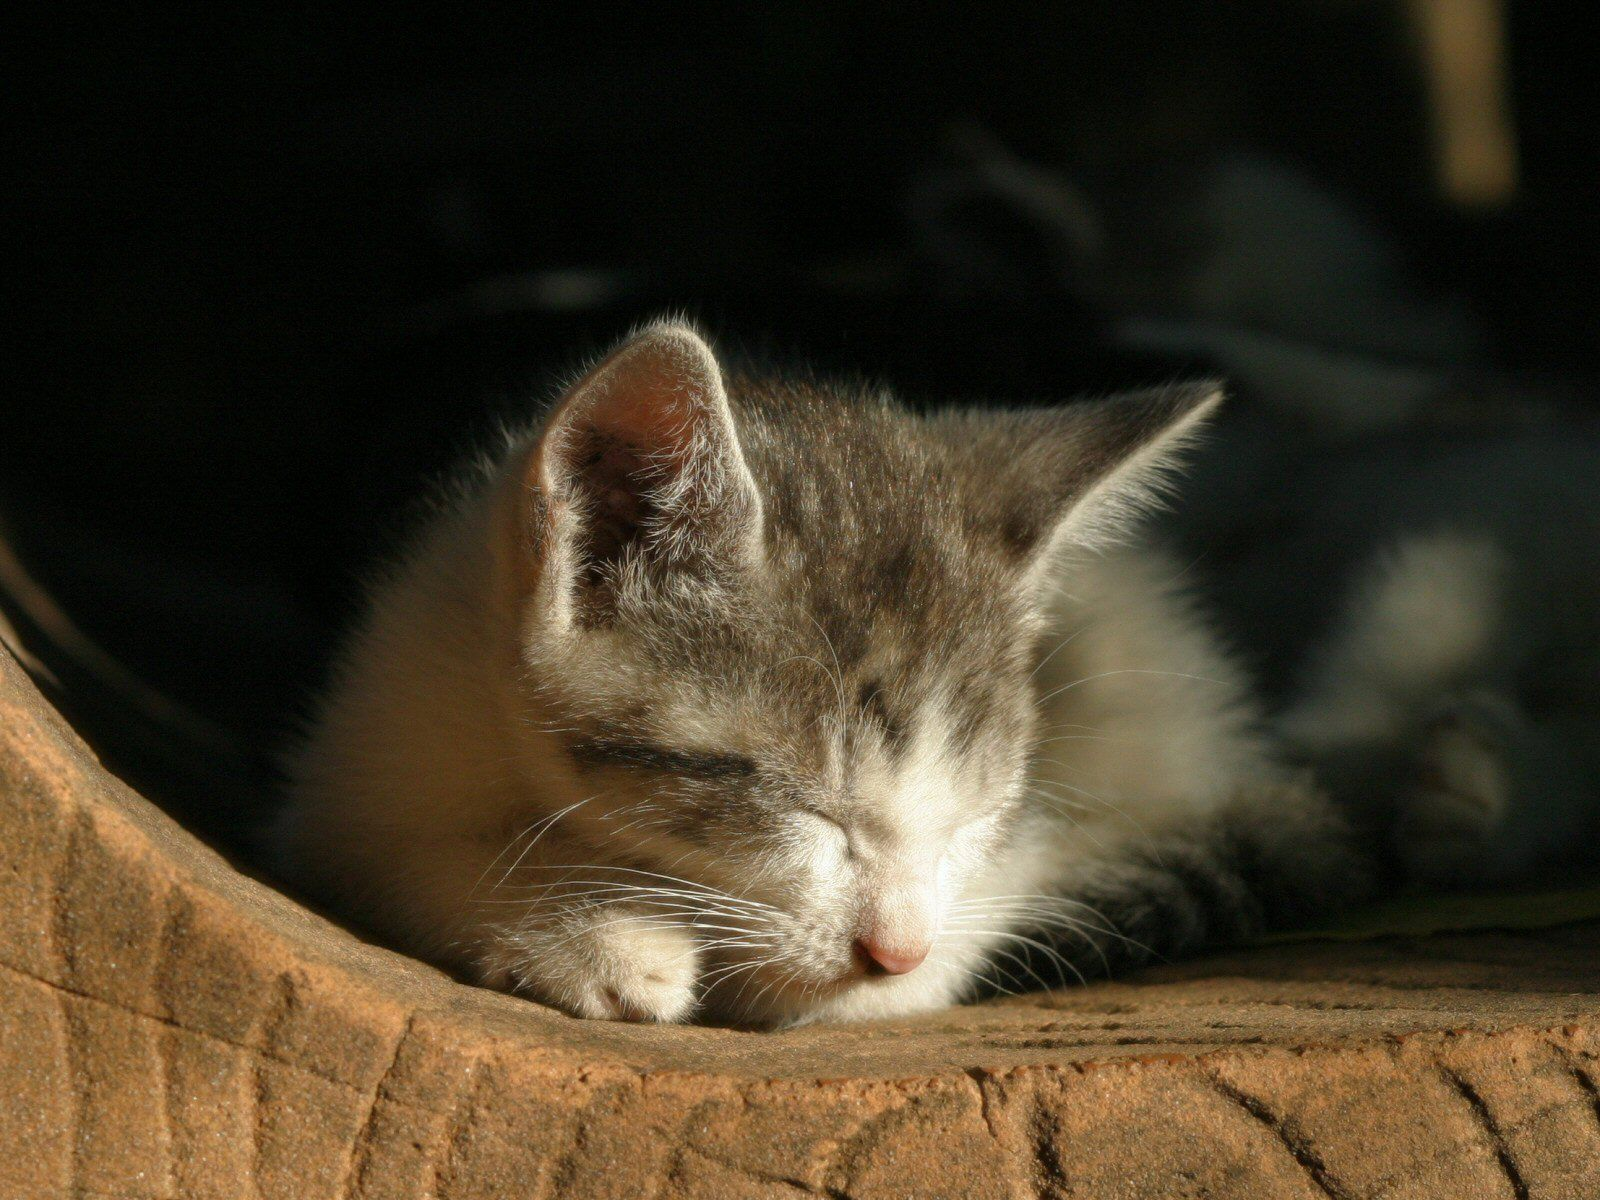 click to free download the wallpaper--Sleeping Cat Post, Kitten in Sound Sleep, Tomorrow Will Stay in Another Place 1600X1200 free wallpaper download